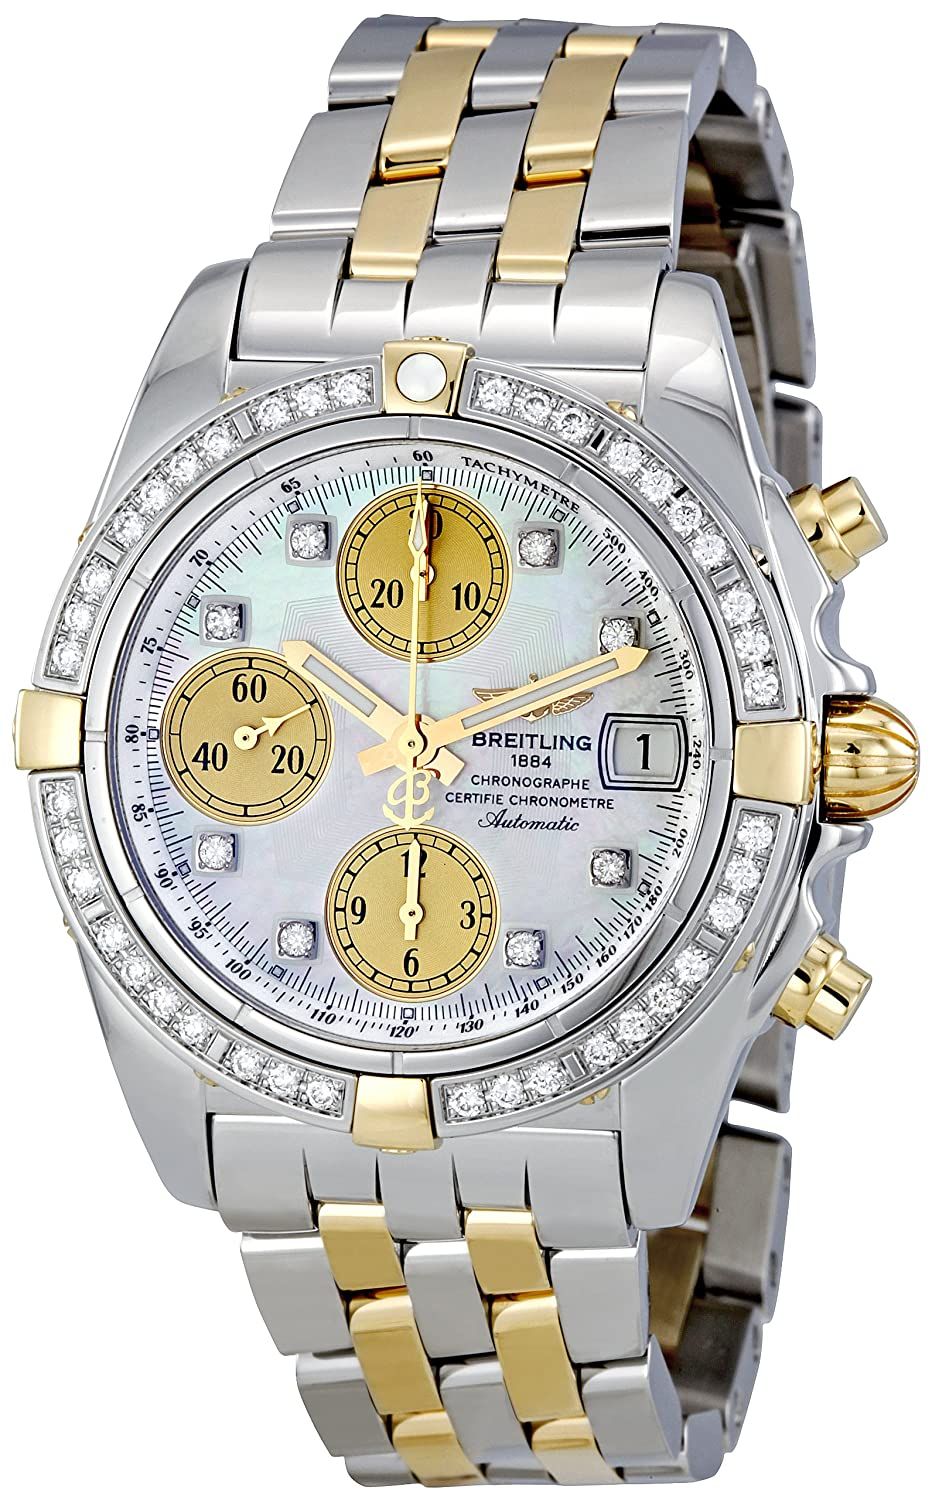 White Watches For Men - Breitling Men's Chrono Galactic White Dial Watch